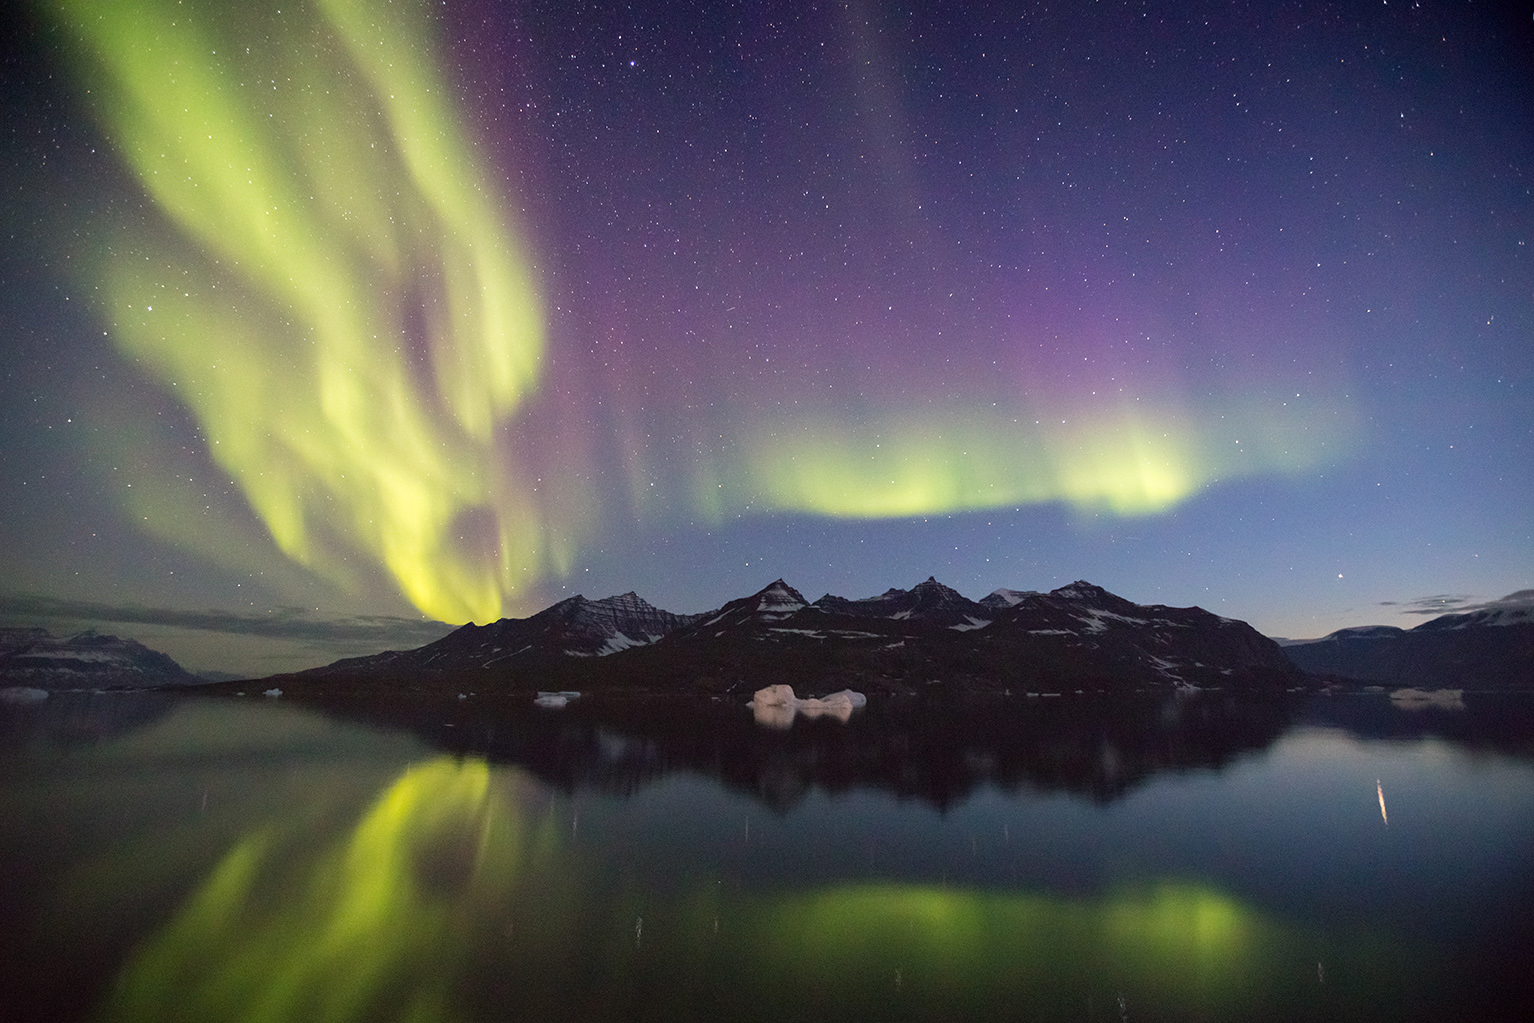 Remote regions in the Arctic, away from human-made light, are ideal locations to witness the Northern Lights